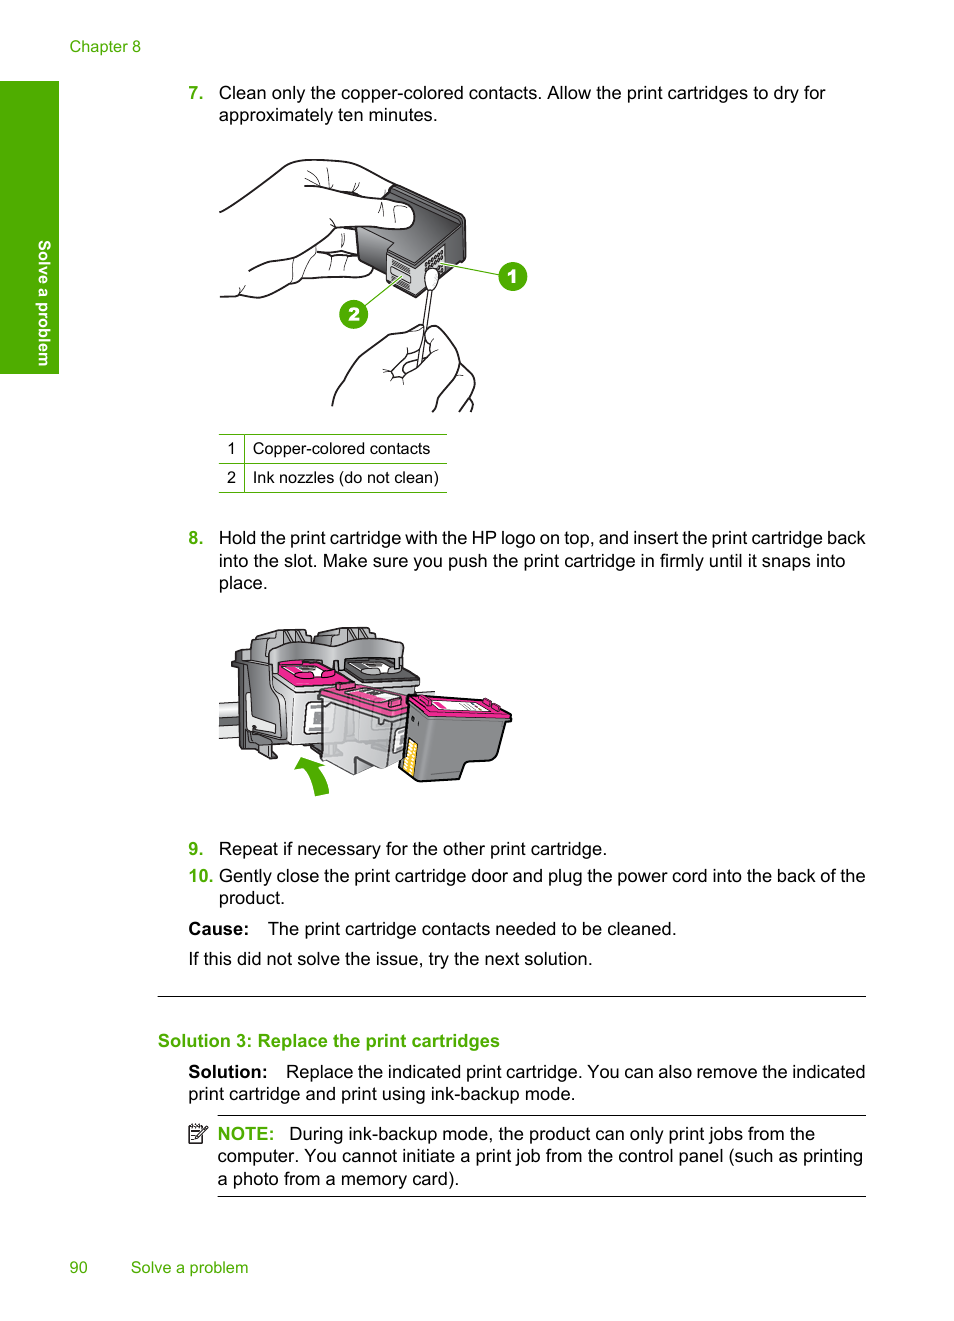 Solution 3: replace the print cartridges | HP Deskjet F4480 User Manual |  Page 93